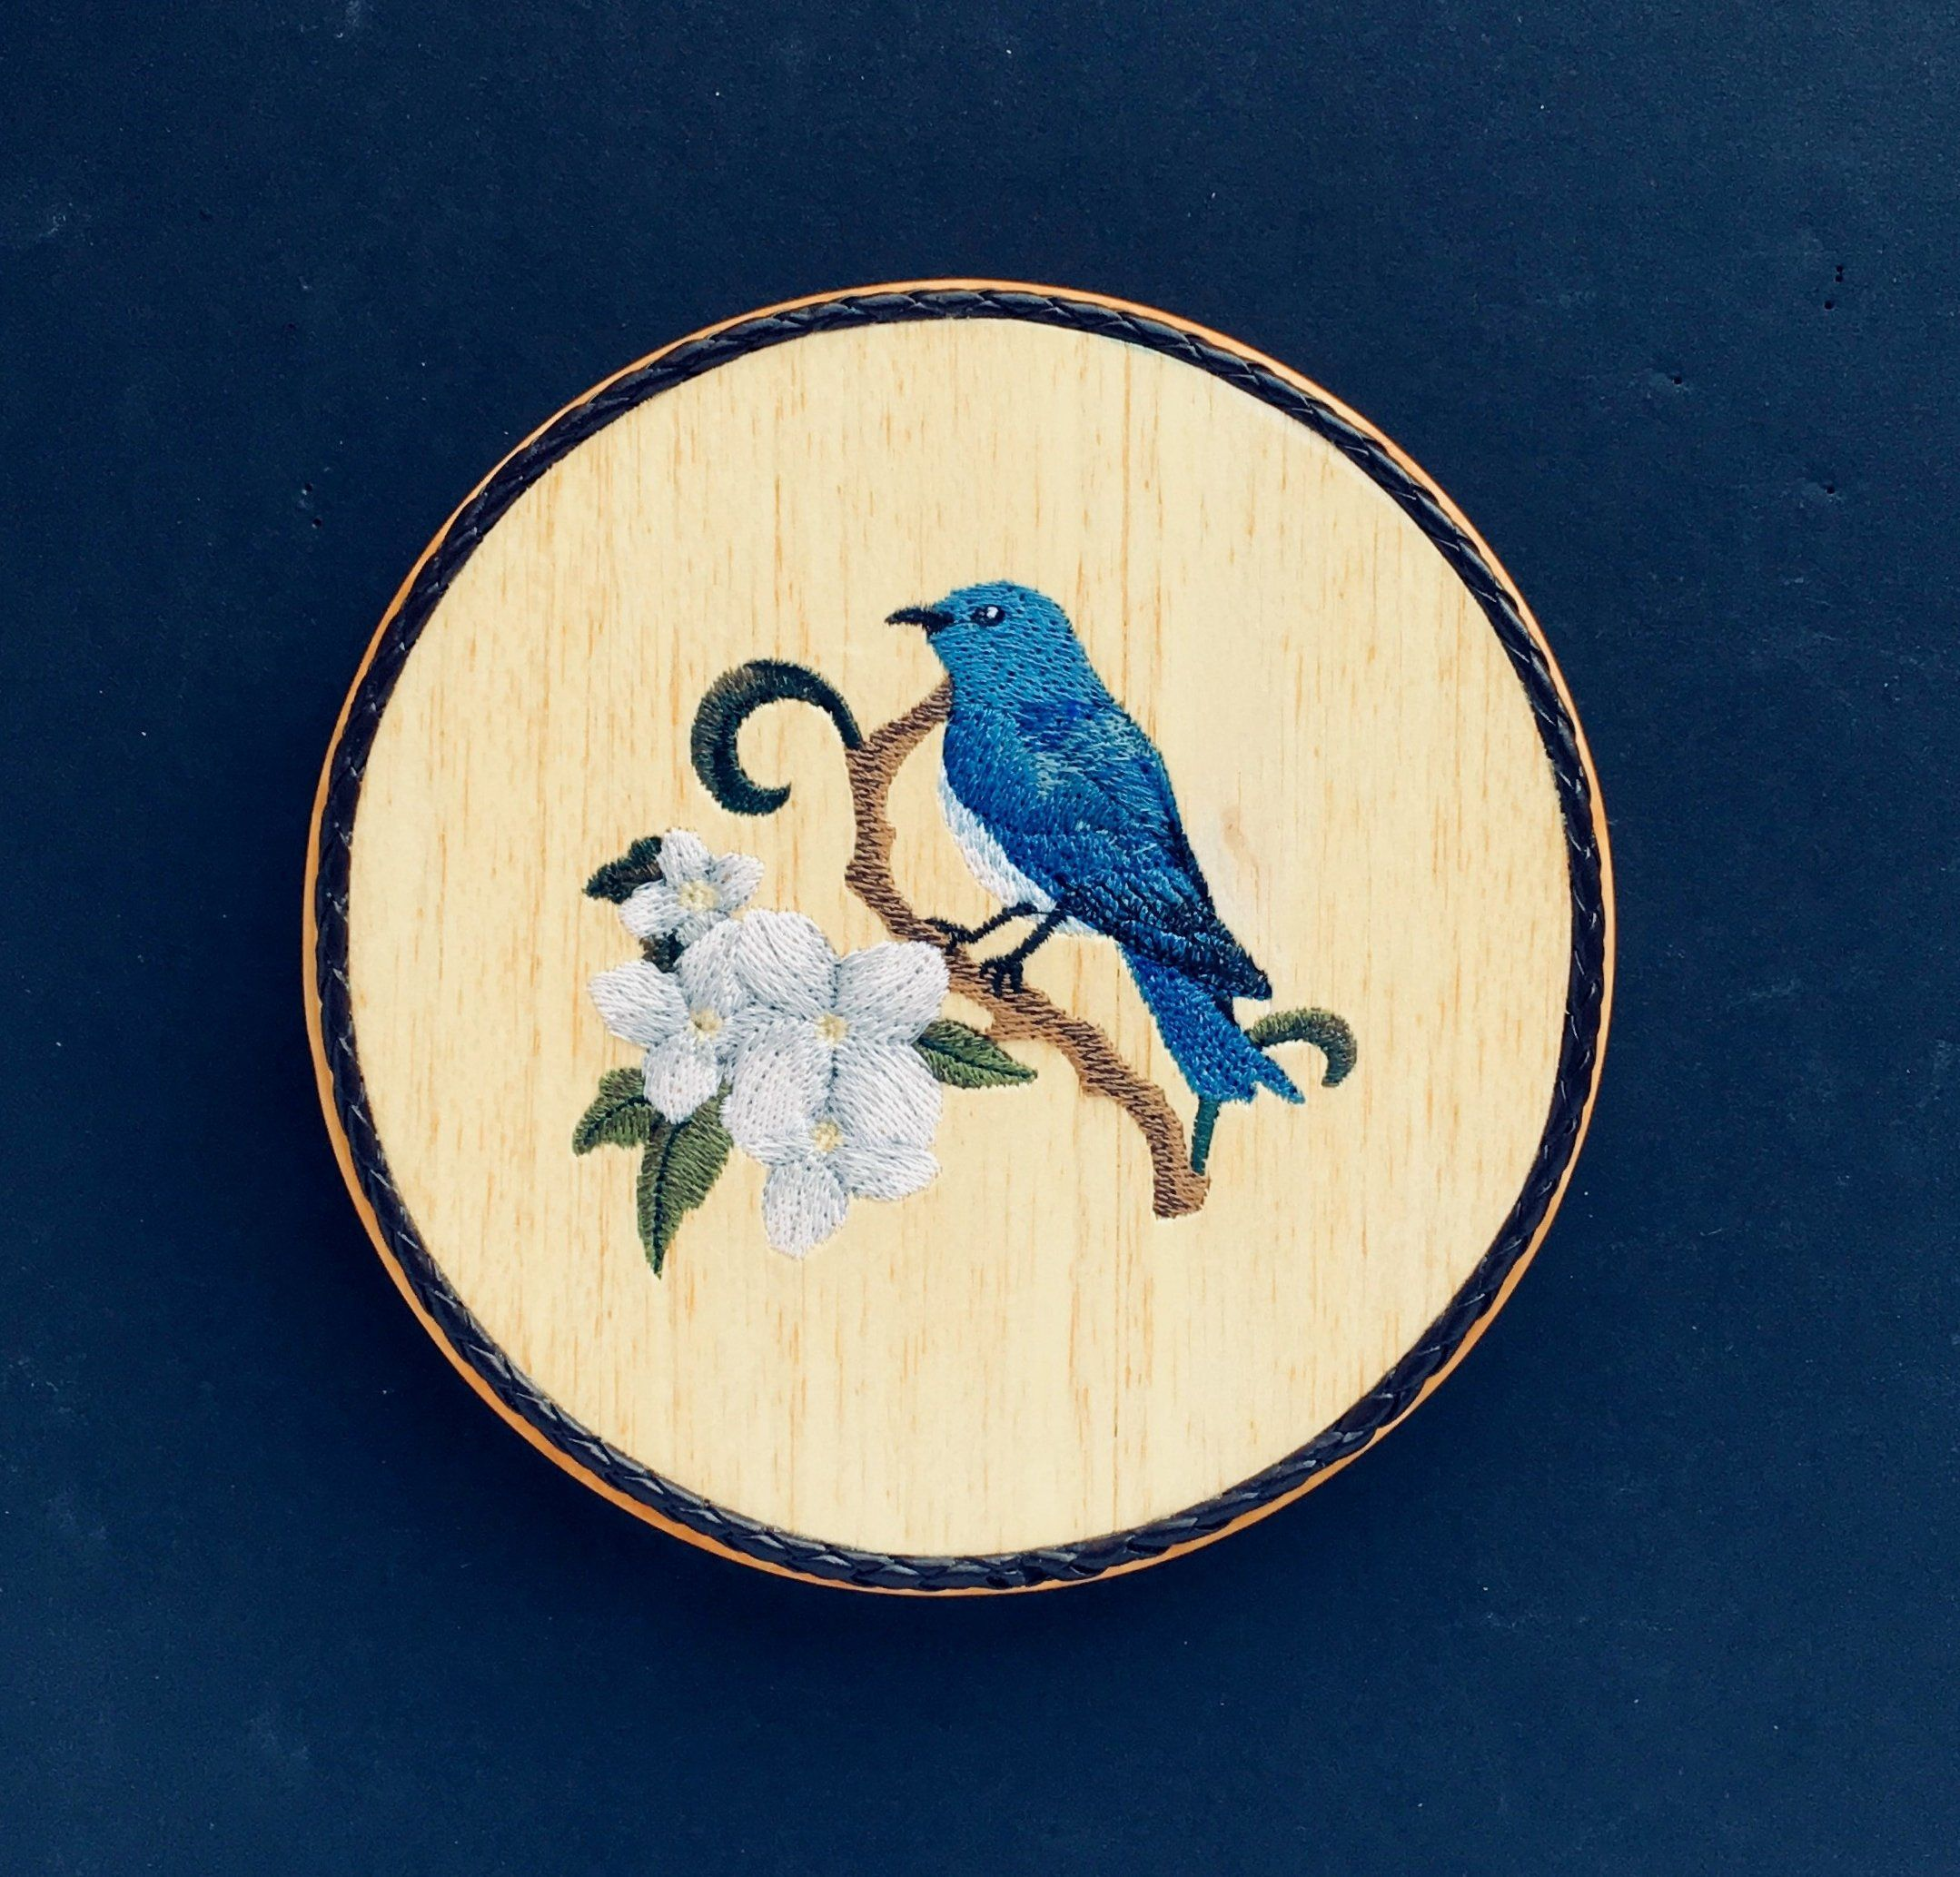 Bluebird Embroidery Art on Balsa Wood, Pretty Song Birds and Flowers ...